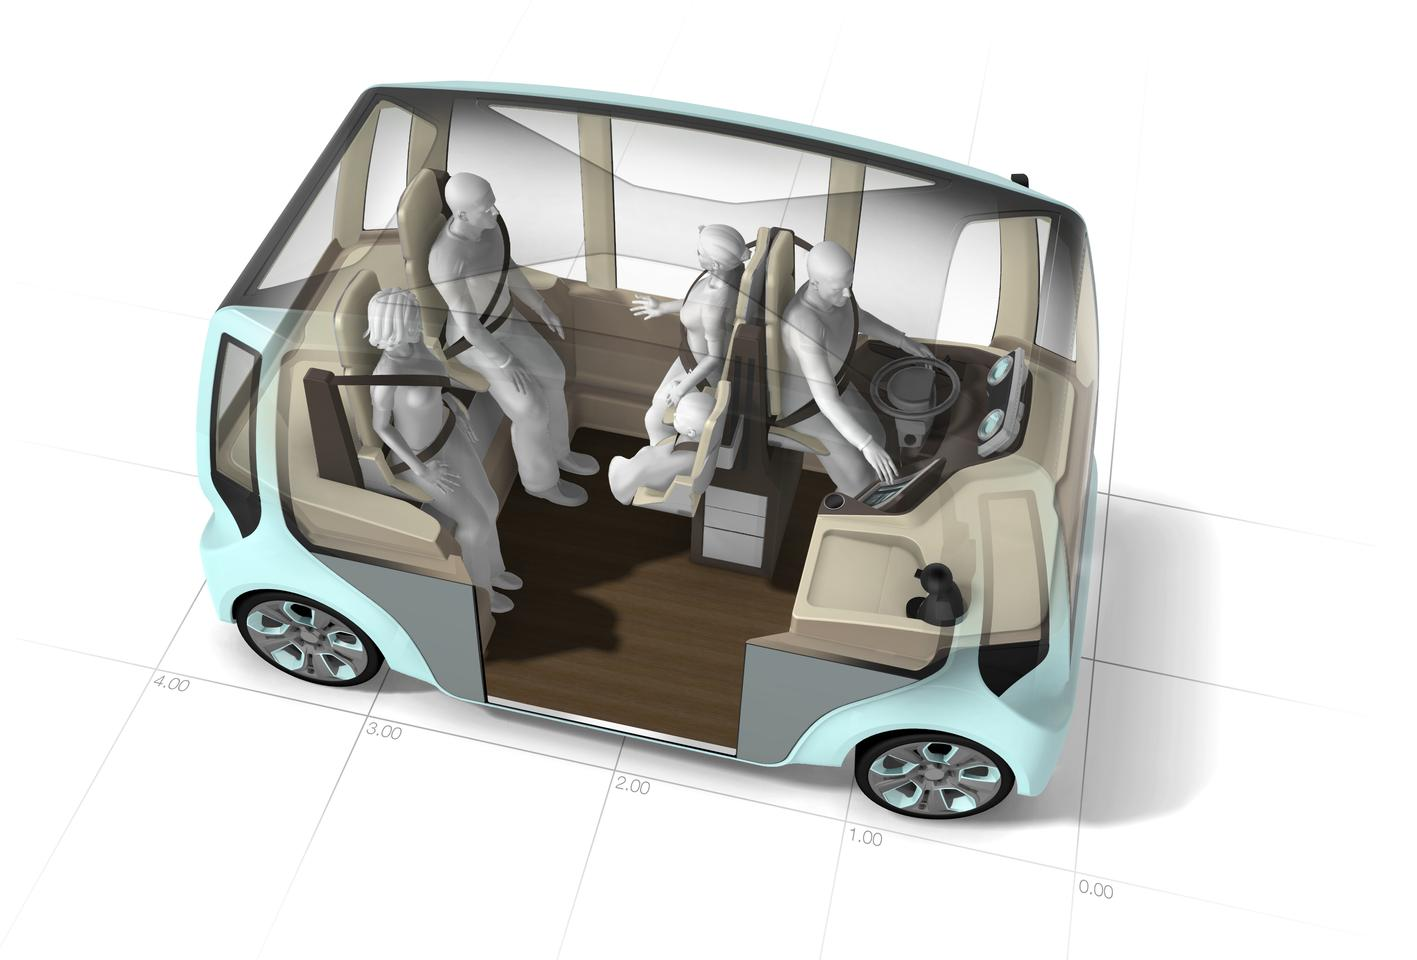 The Rinspeed microMAX concept, with its semi-standing passengers